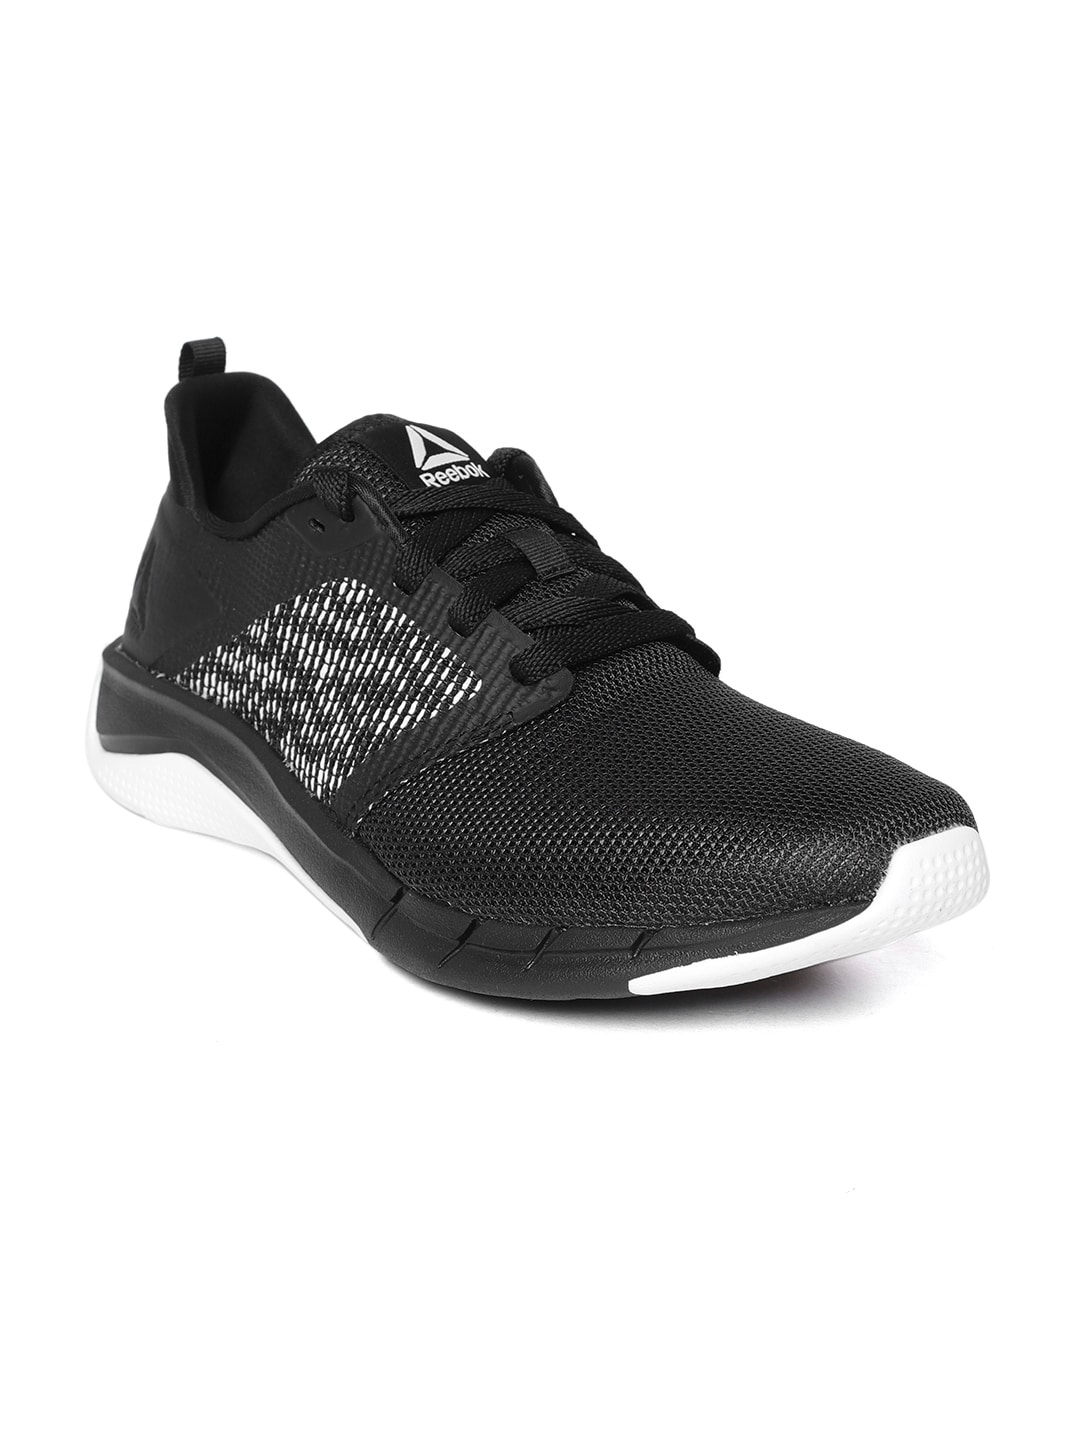 b77a525d6 Reebok Running Shoes Sports - Buy Reebok Running Shoes Sports online in  India